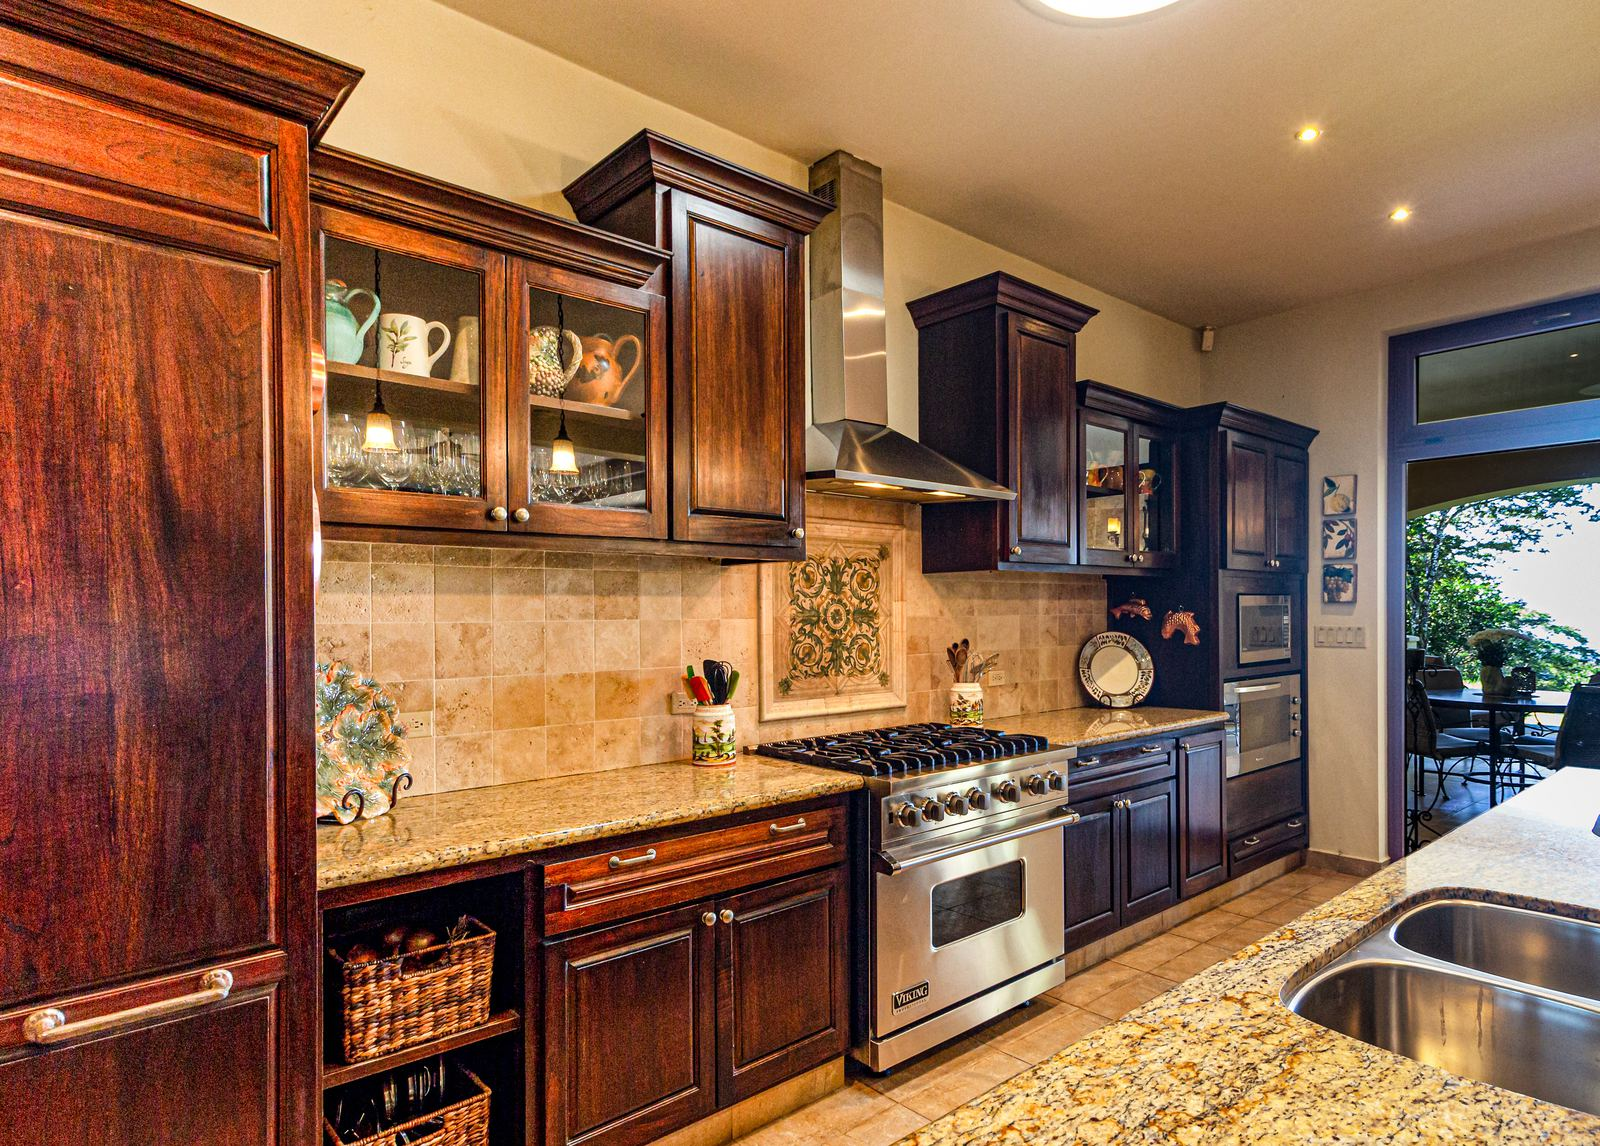 The Average Cost Of A Kitchen Remodel In Northern Virginia